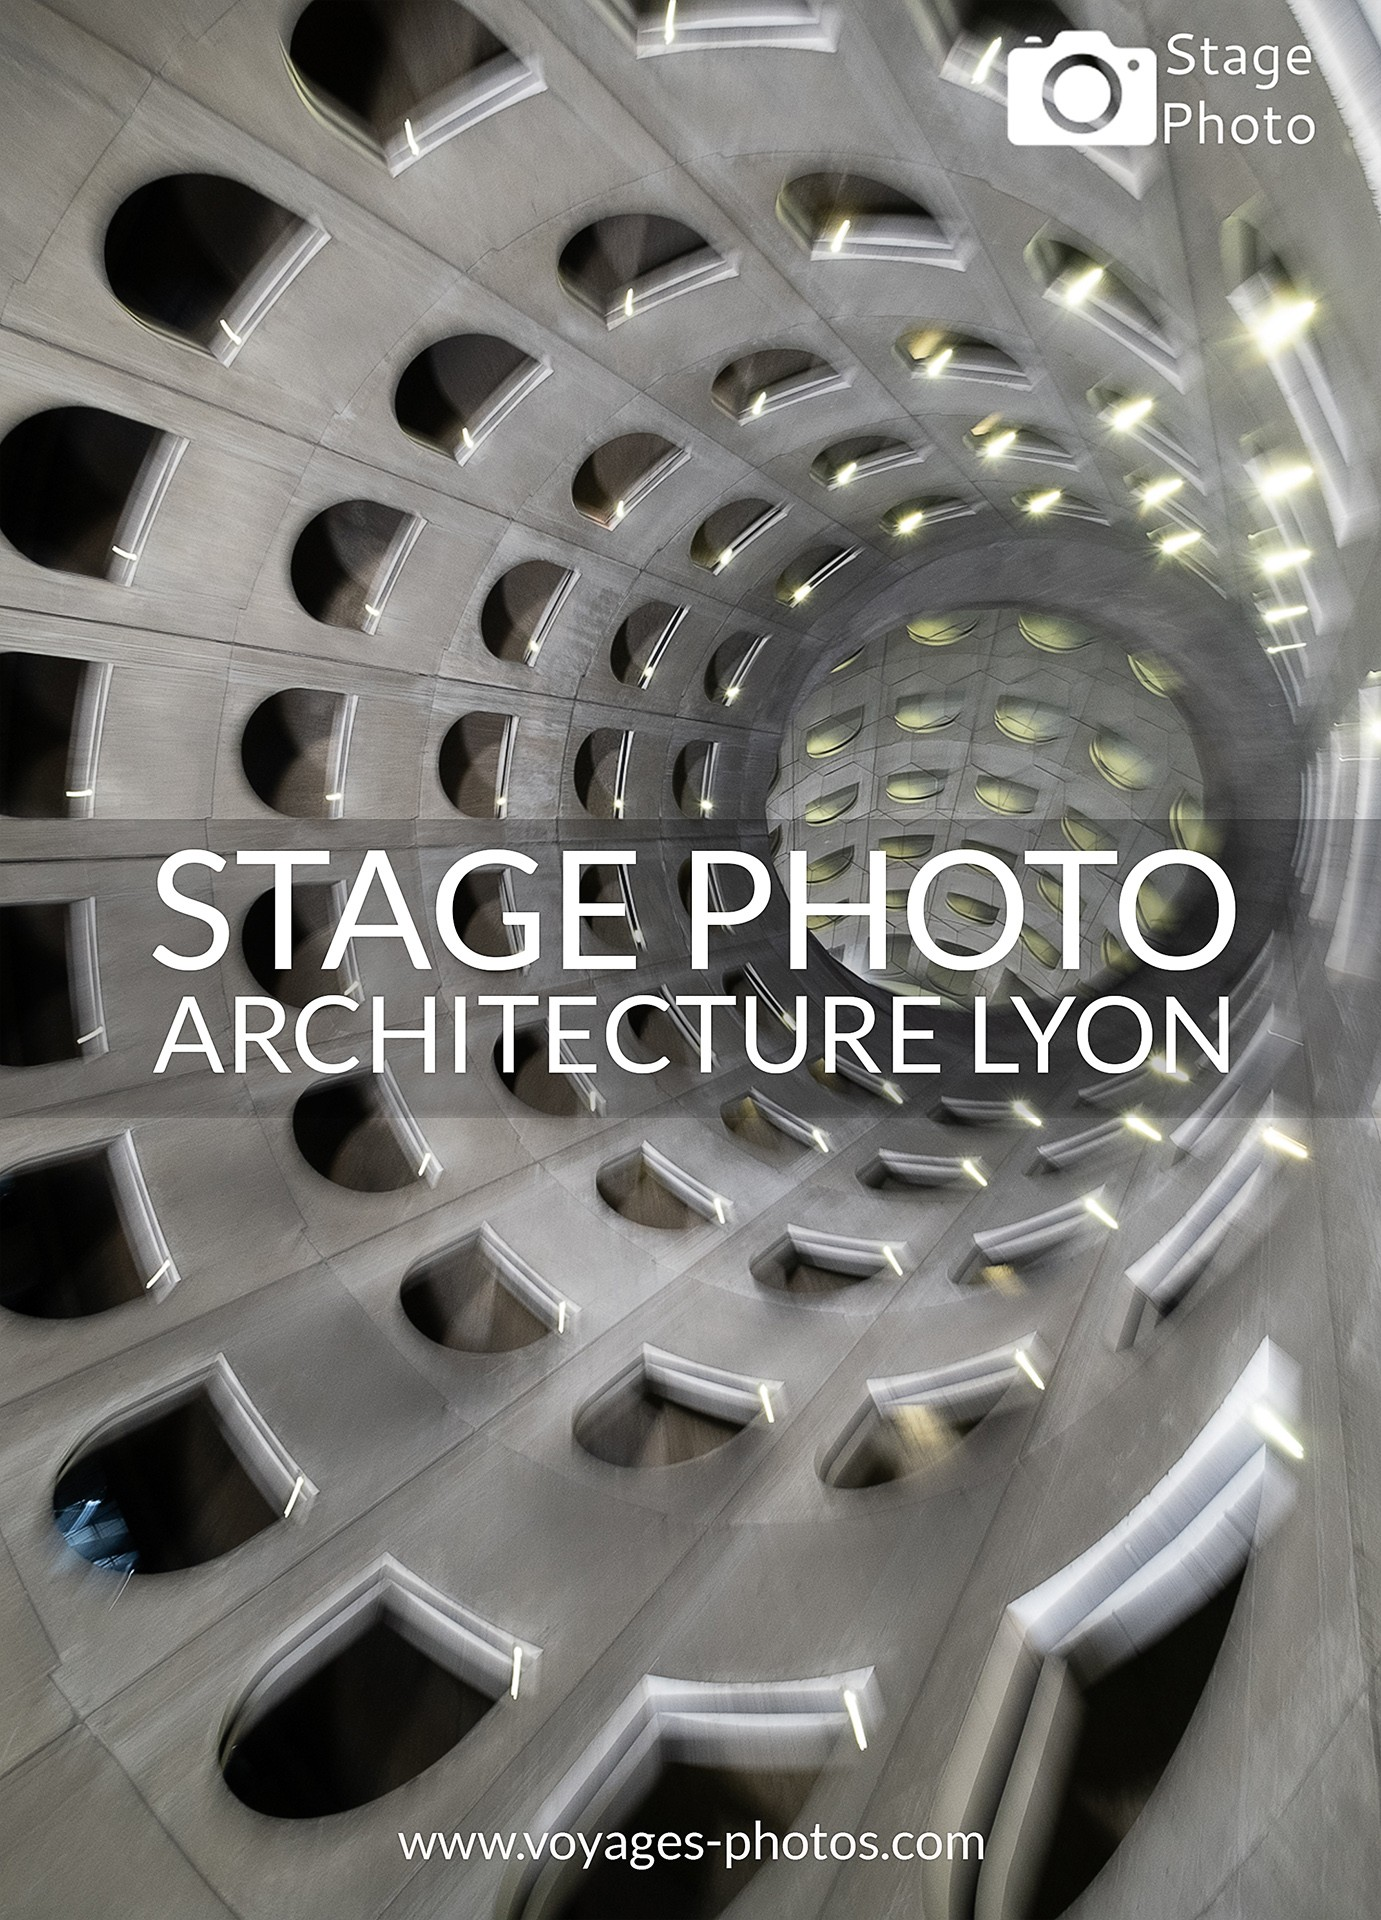 Stage photographie Lyon